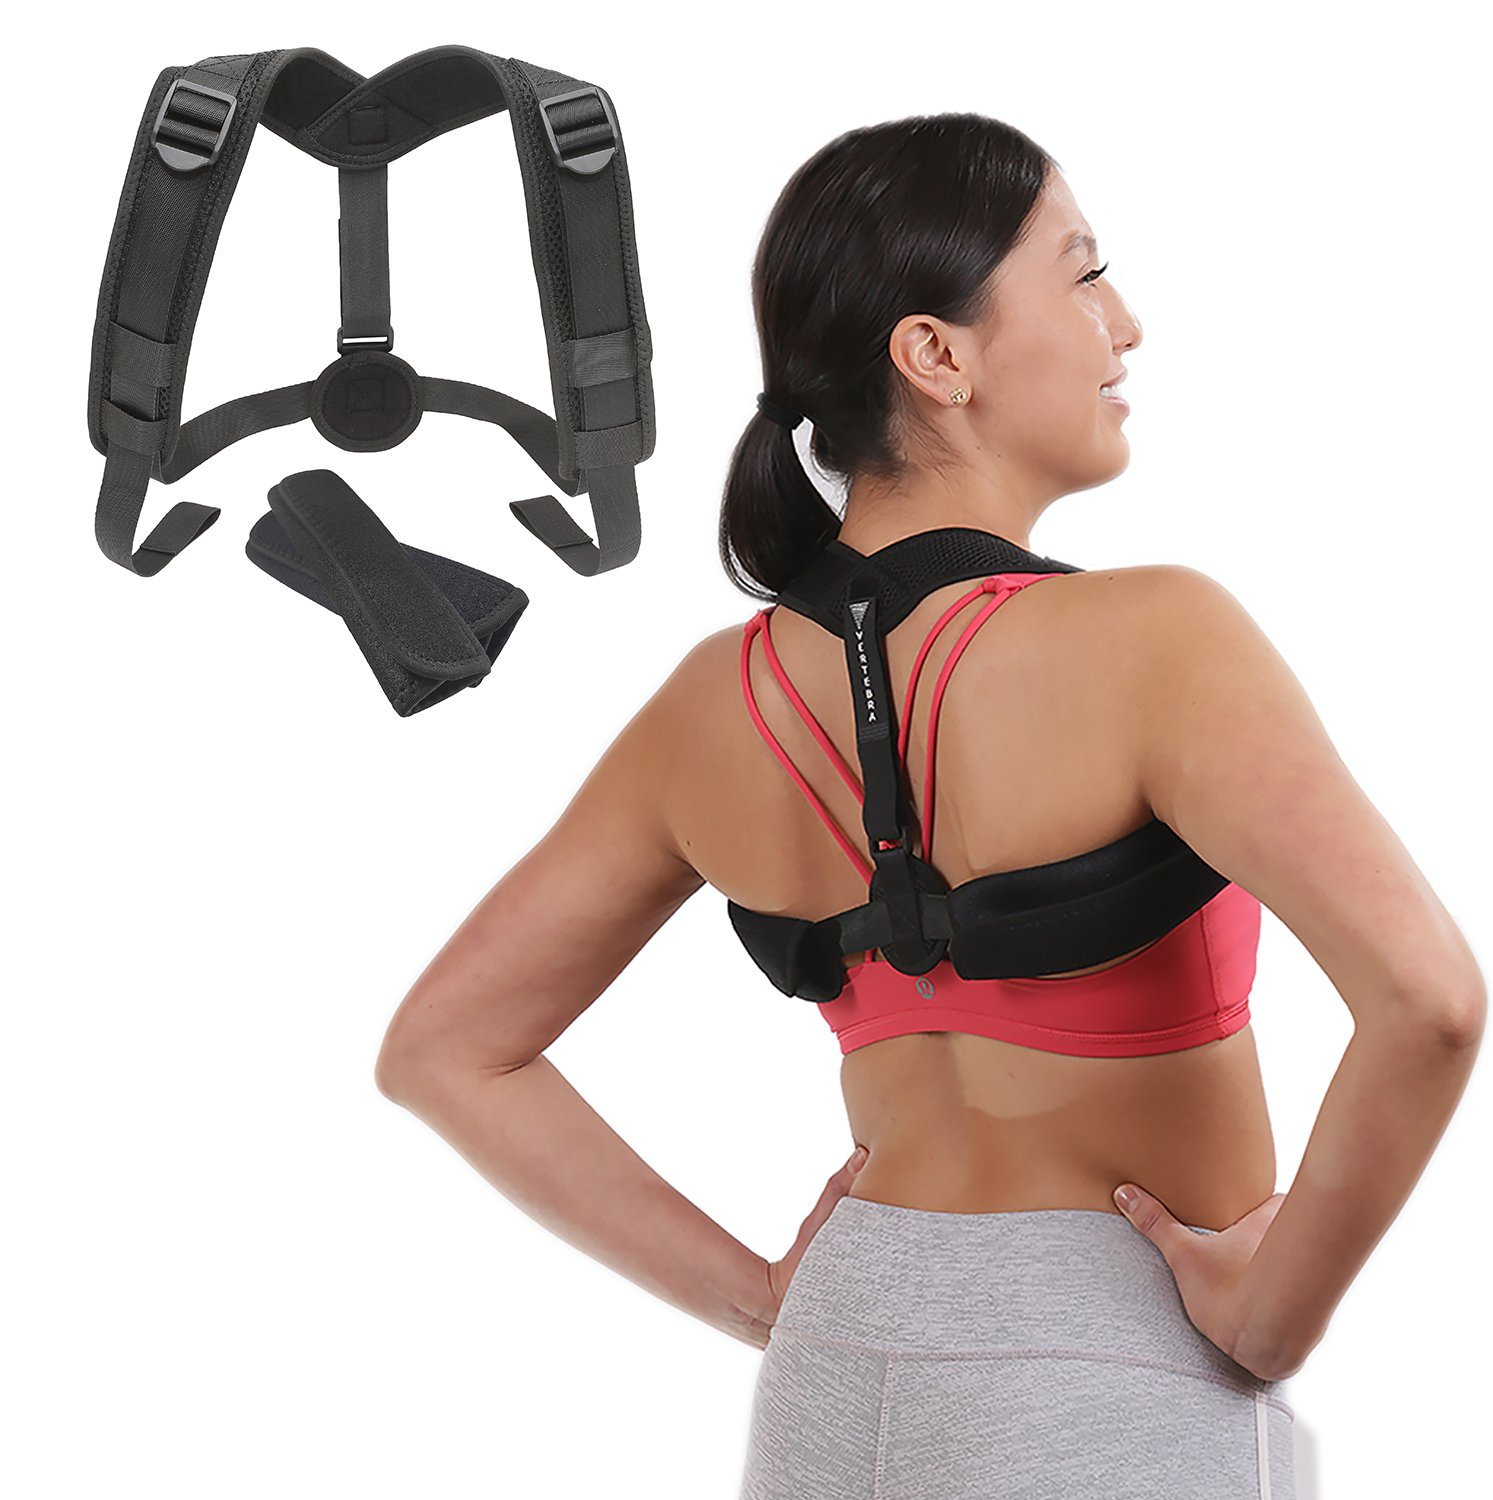 Adjustable Posture Corrector by Vertebra - Discreet under clothes design for women and men - Upper Back Brace helps support and correct posture to relieve neck and back pain. by Vertebra